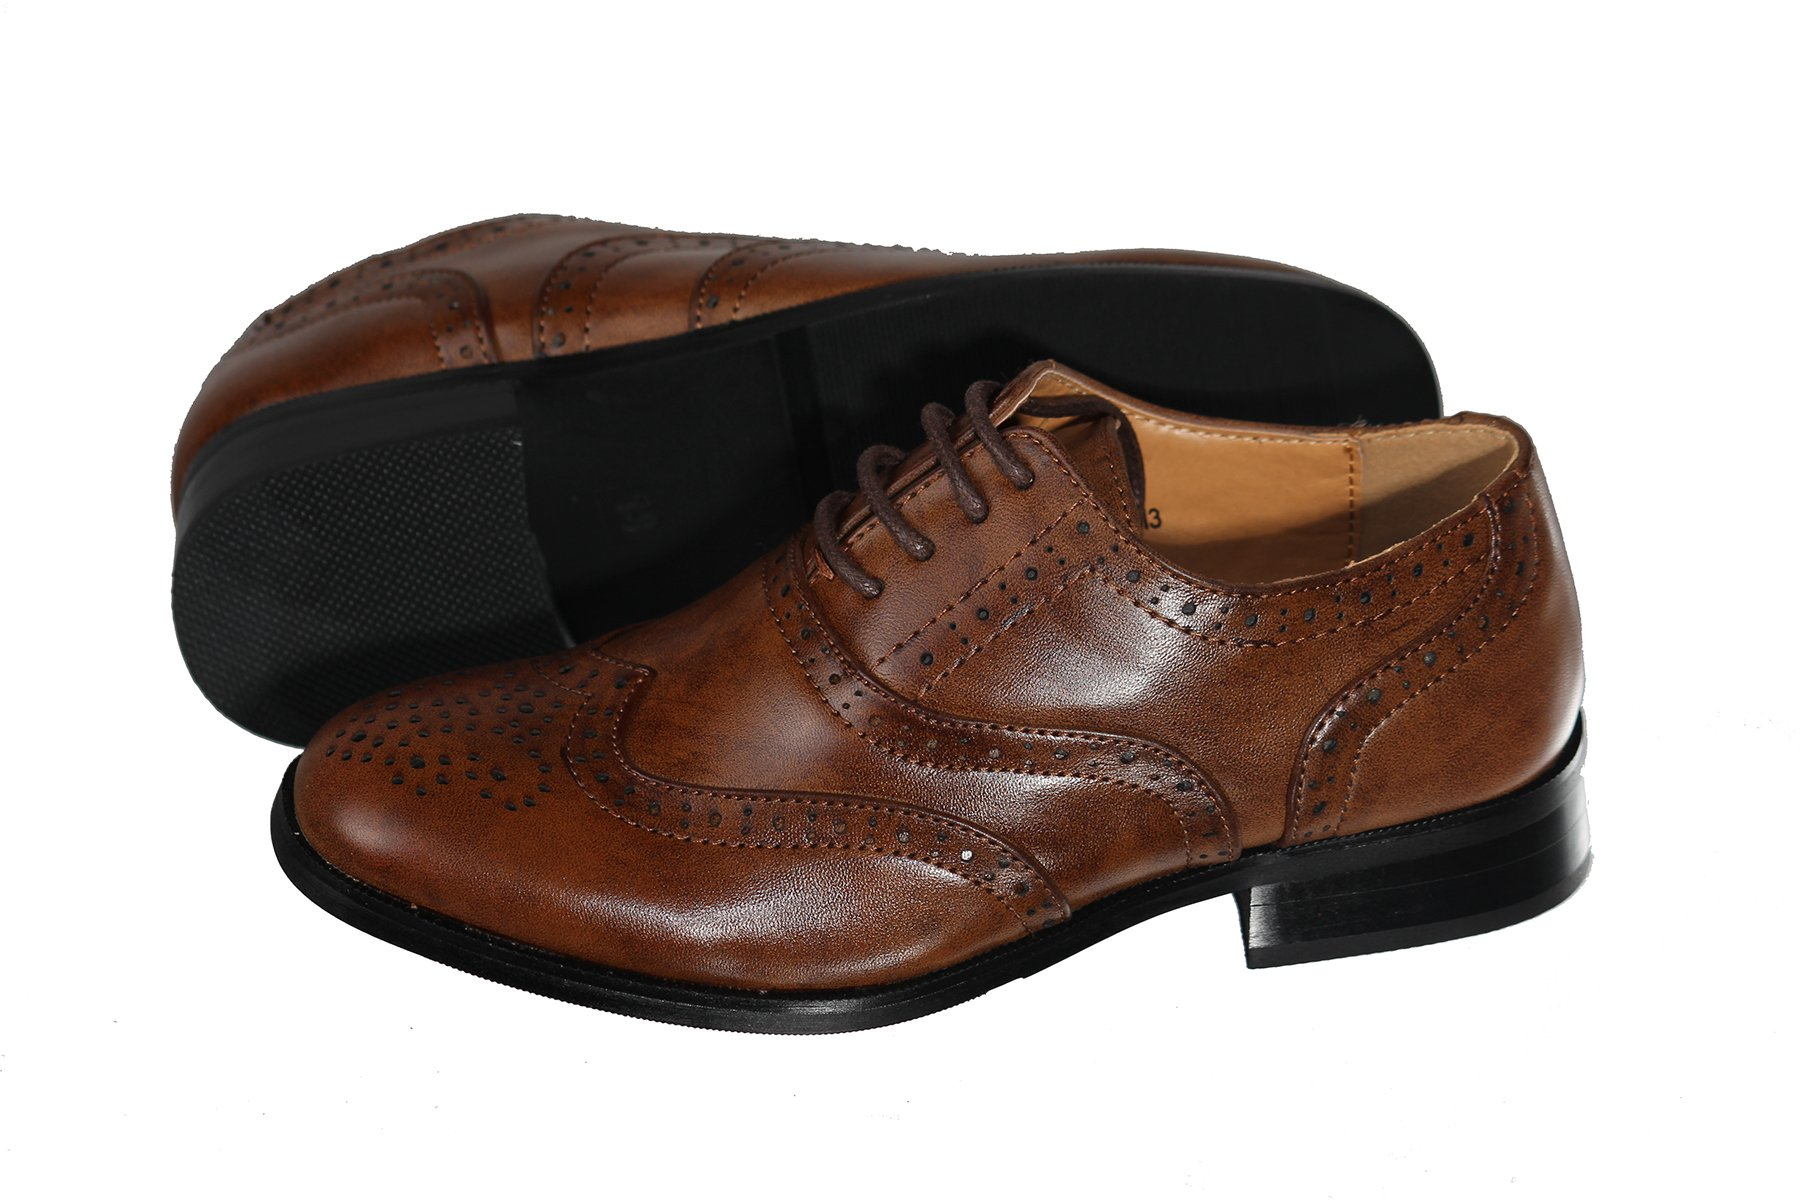 TipTop Boys Brown Oxford Pattern Lace Up Formal Dress Shoes (Little Boys 11)